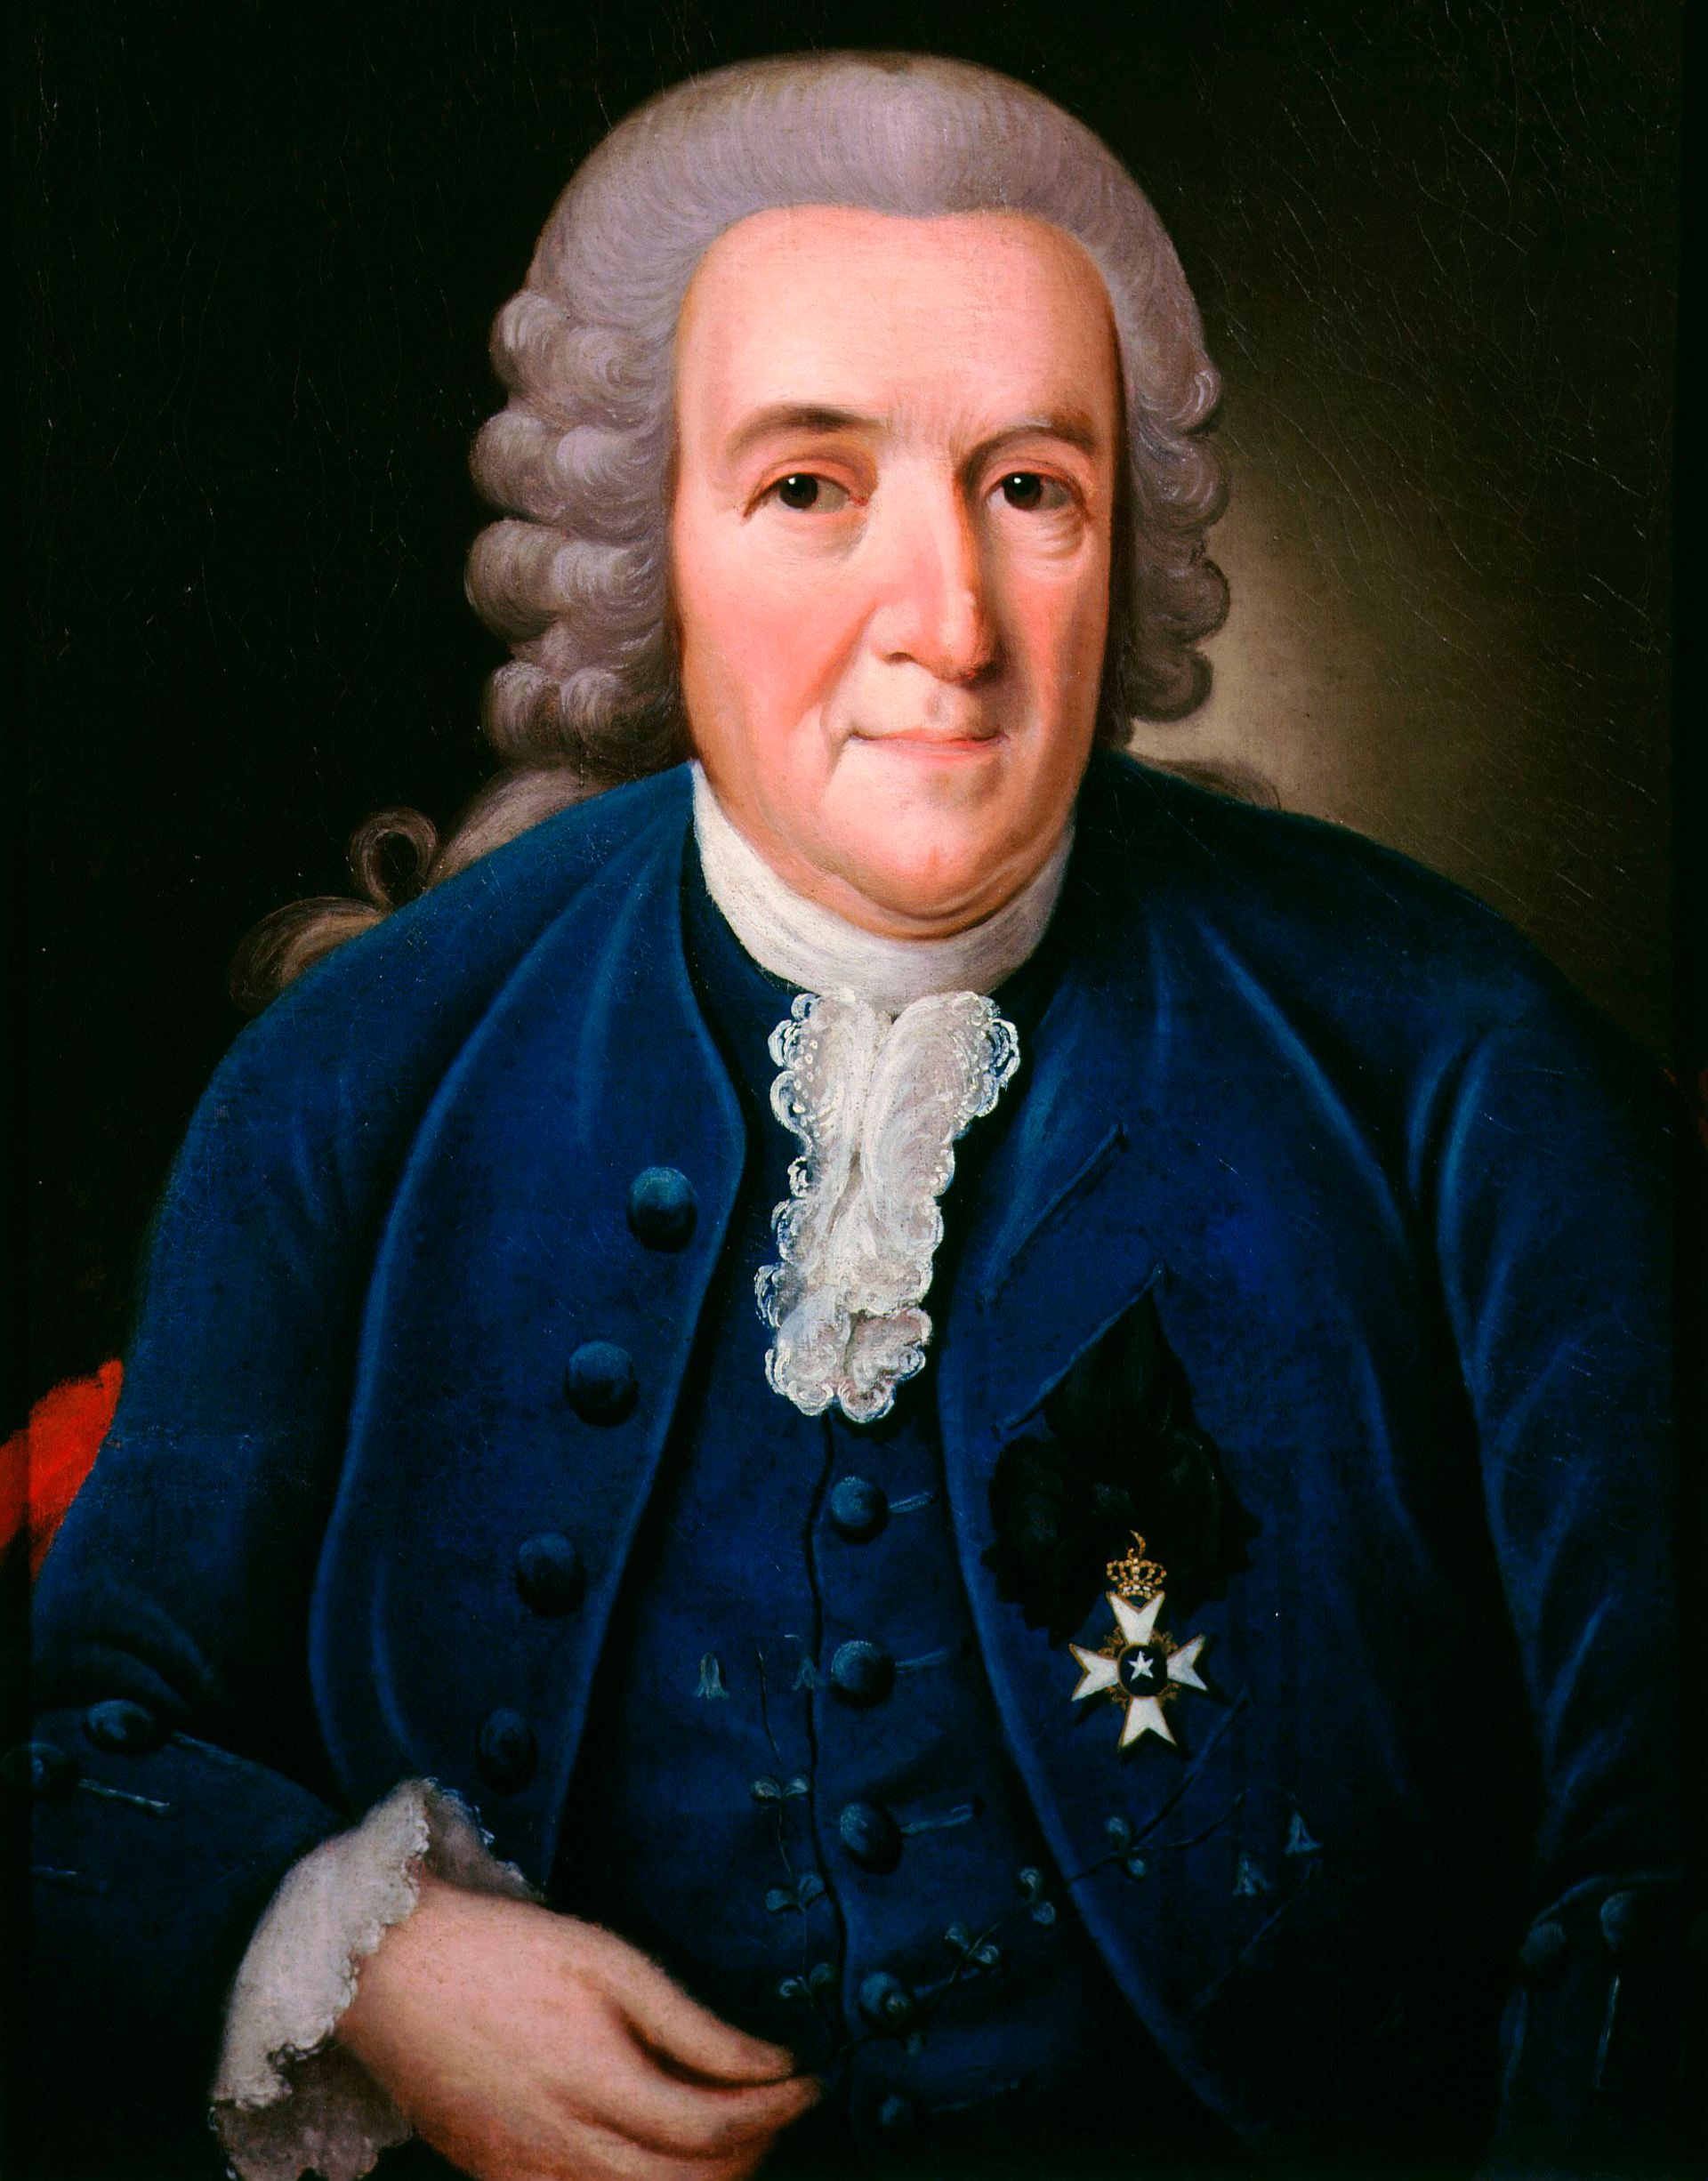 carl linnaeus Linnaeus, carolus (1707 - 1778) carolus linnaeus (or carl von linné) was born on may 23 1707, and died on january 10 1778 he was a swedish scientist who laid the foundations for the modern scheme of.